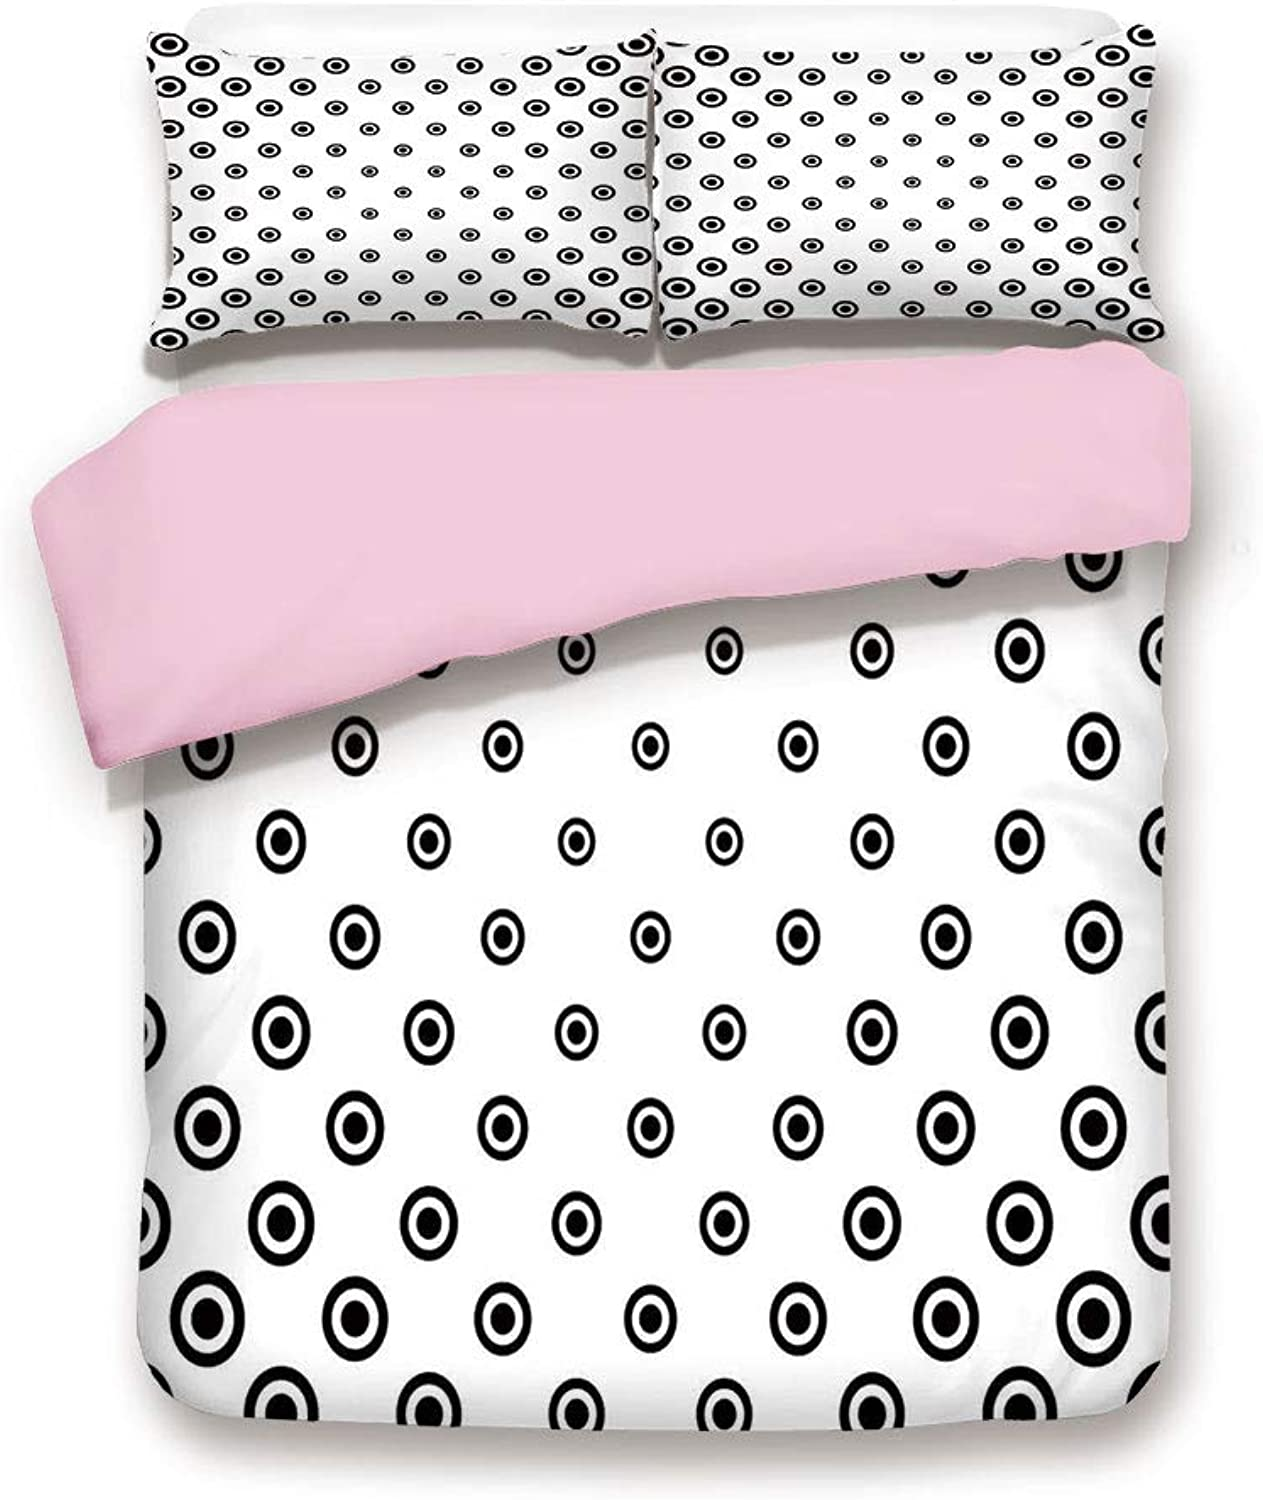 IPrint Pink Duvet Cover Set,Twin Size,Different Round Shaped Dots Spots Motif Simple Abstract Background,Decorative 3 Piece Bedding Set with 2 Pillow Sham,Best Gift for Girls Women,Black White